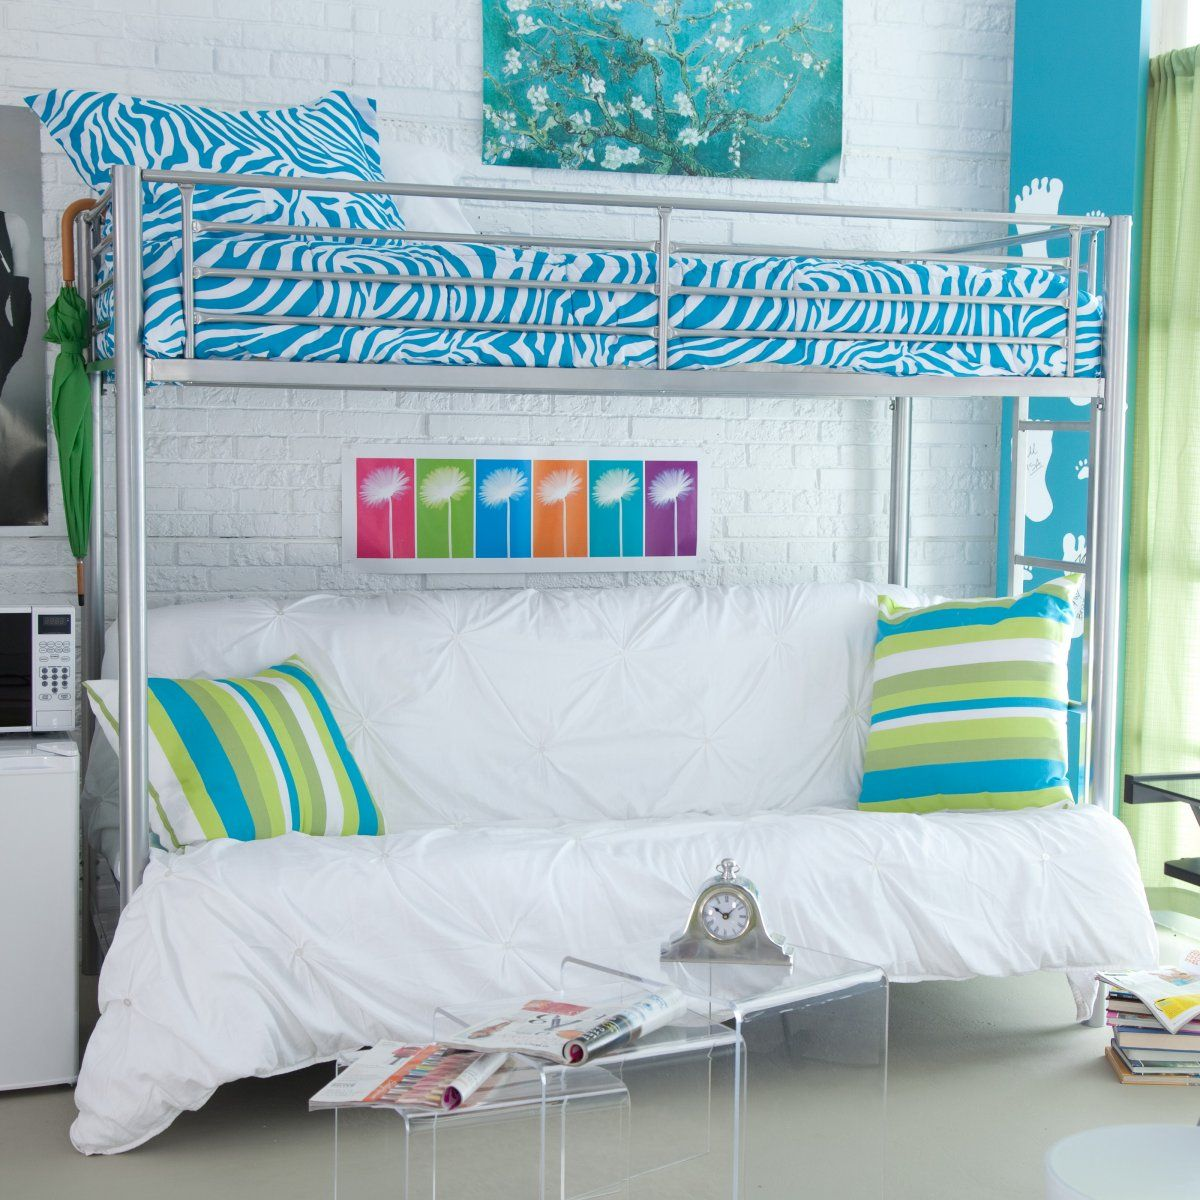 duro wesley twin over futon bunk bed - silver - futon bunk beds at